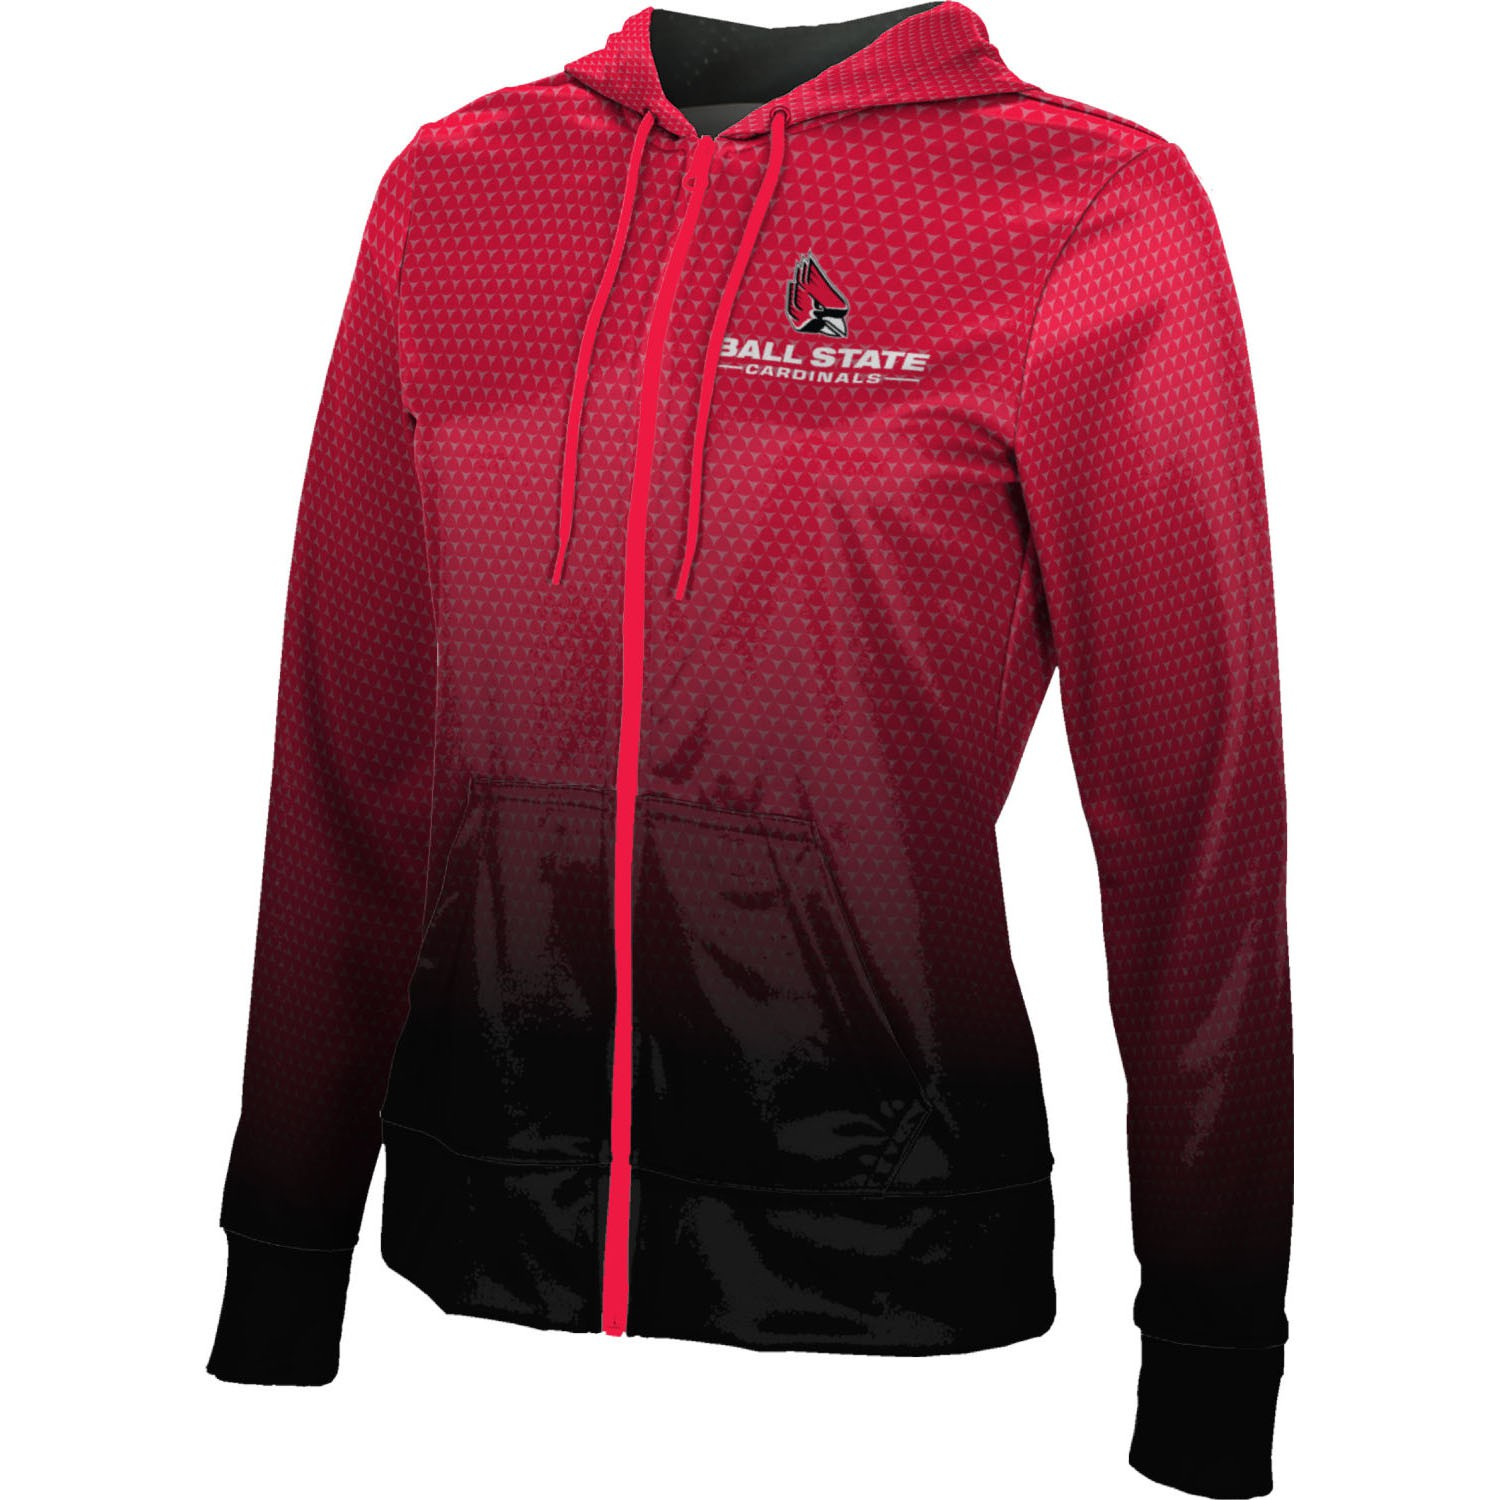 ProSphere Women's Ball State University Zoom Fullzip Hoodie